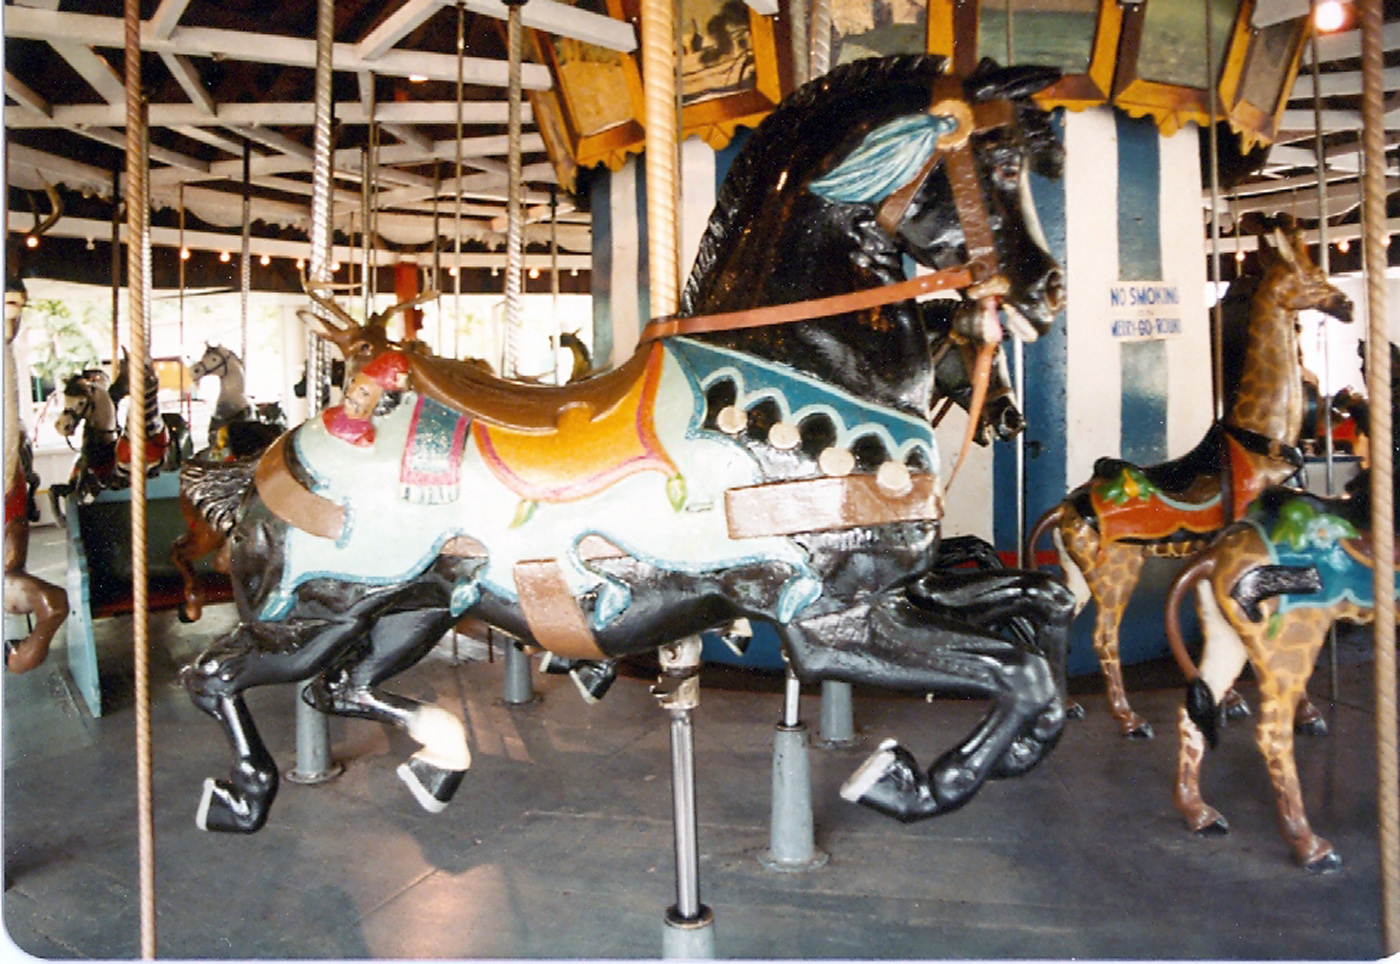 Historic-1902-E-Joy-Morris-Carousel-from-Quassy-Park-CT-Auctioned-1989-050